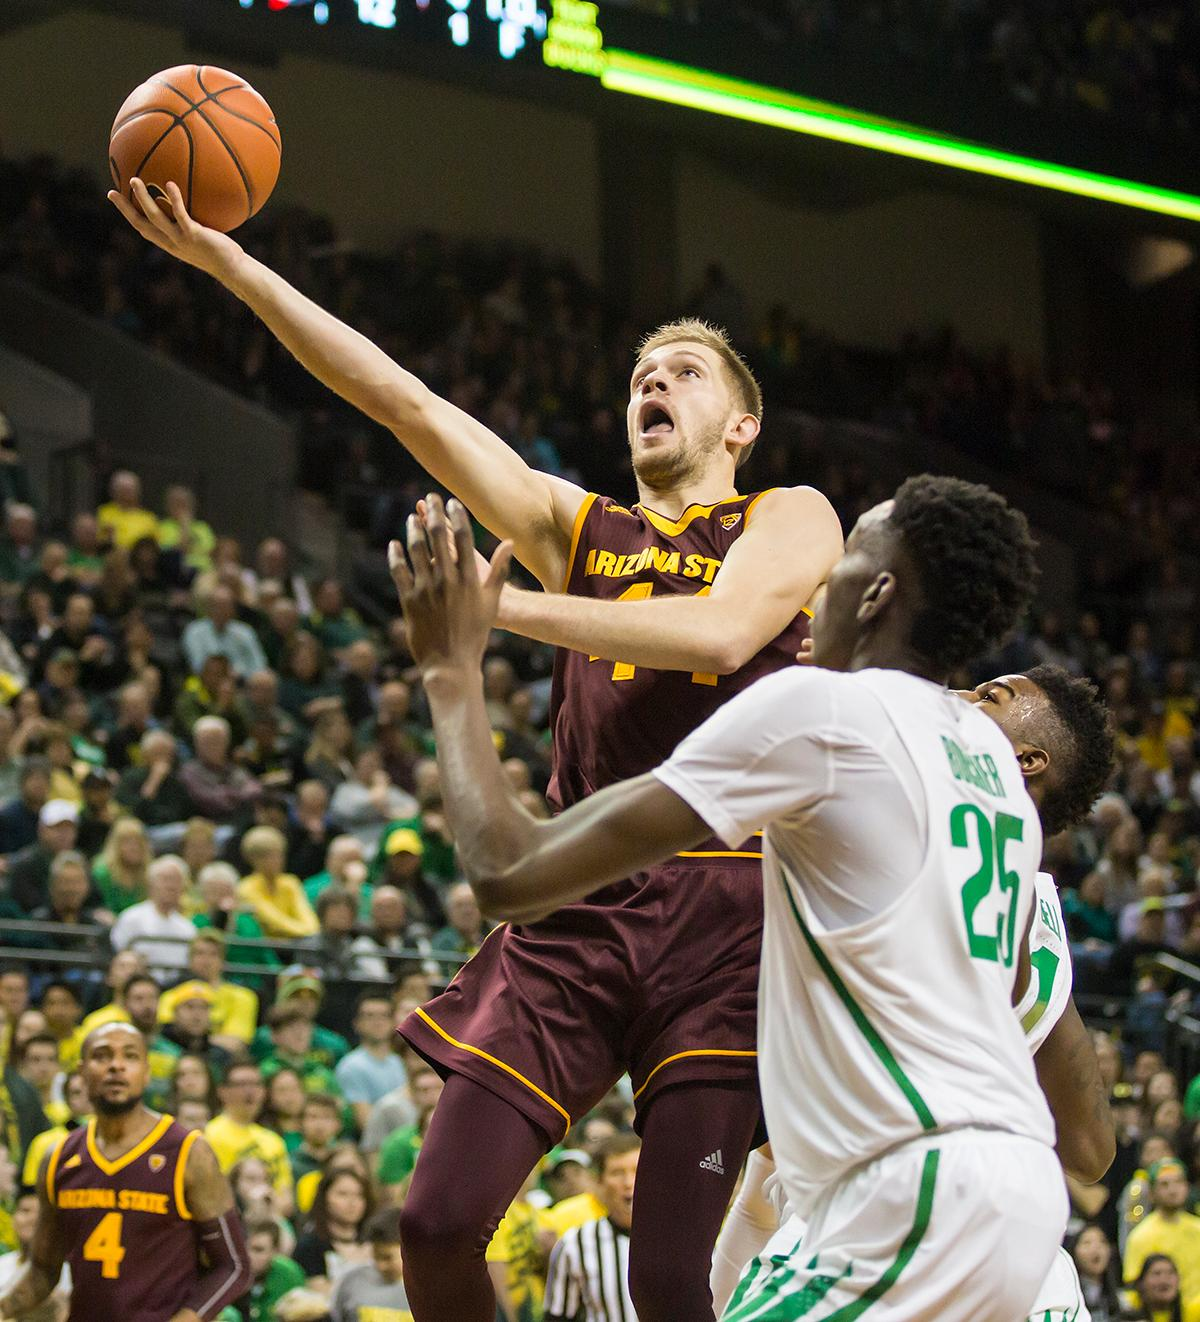 Arizona State guard Kodi Justice (#44) leaps over Oregon forward Chris Boucher (#25) for a layup. Justice ended the evening with five points and three rebounds. The Oregon Ducks defeated the Arizona State Sun Devils 71 to 70. Photo by Ben Lonergan, Oregon News Lab